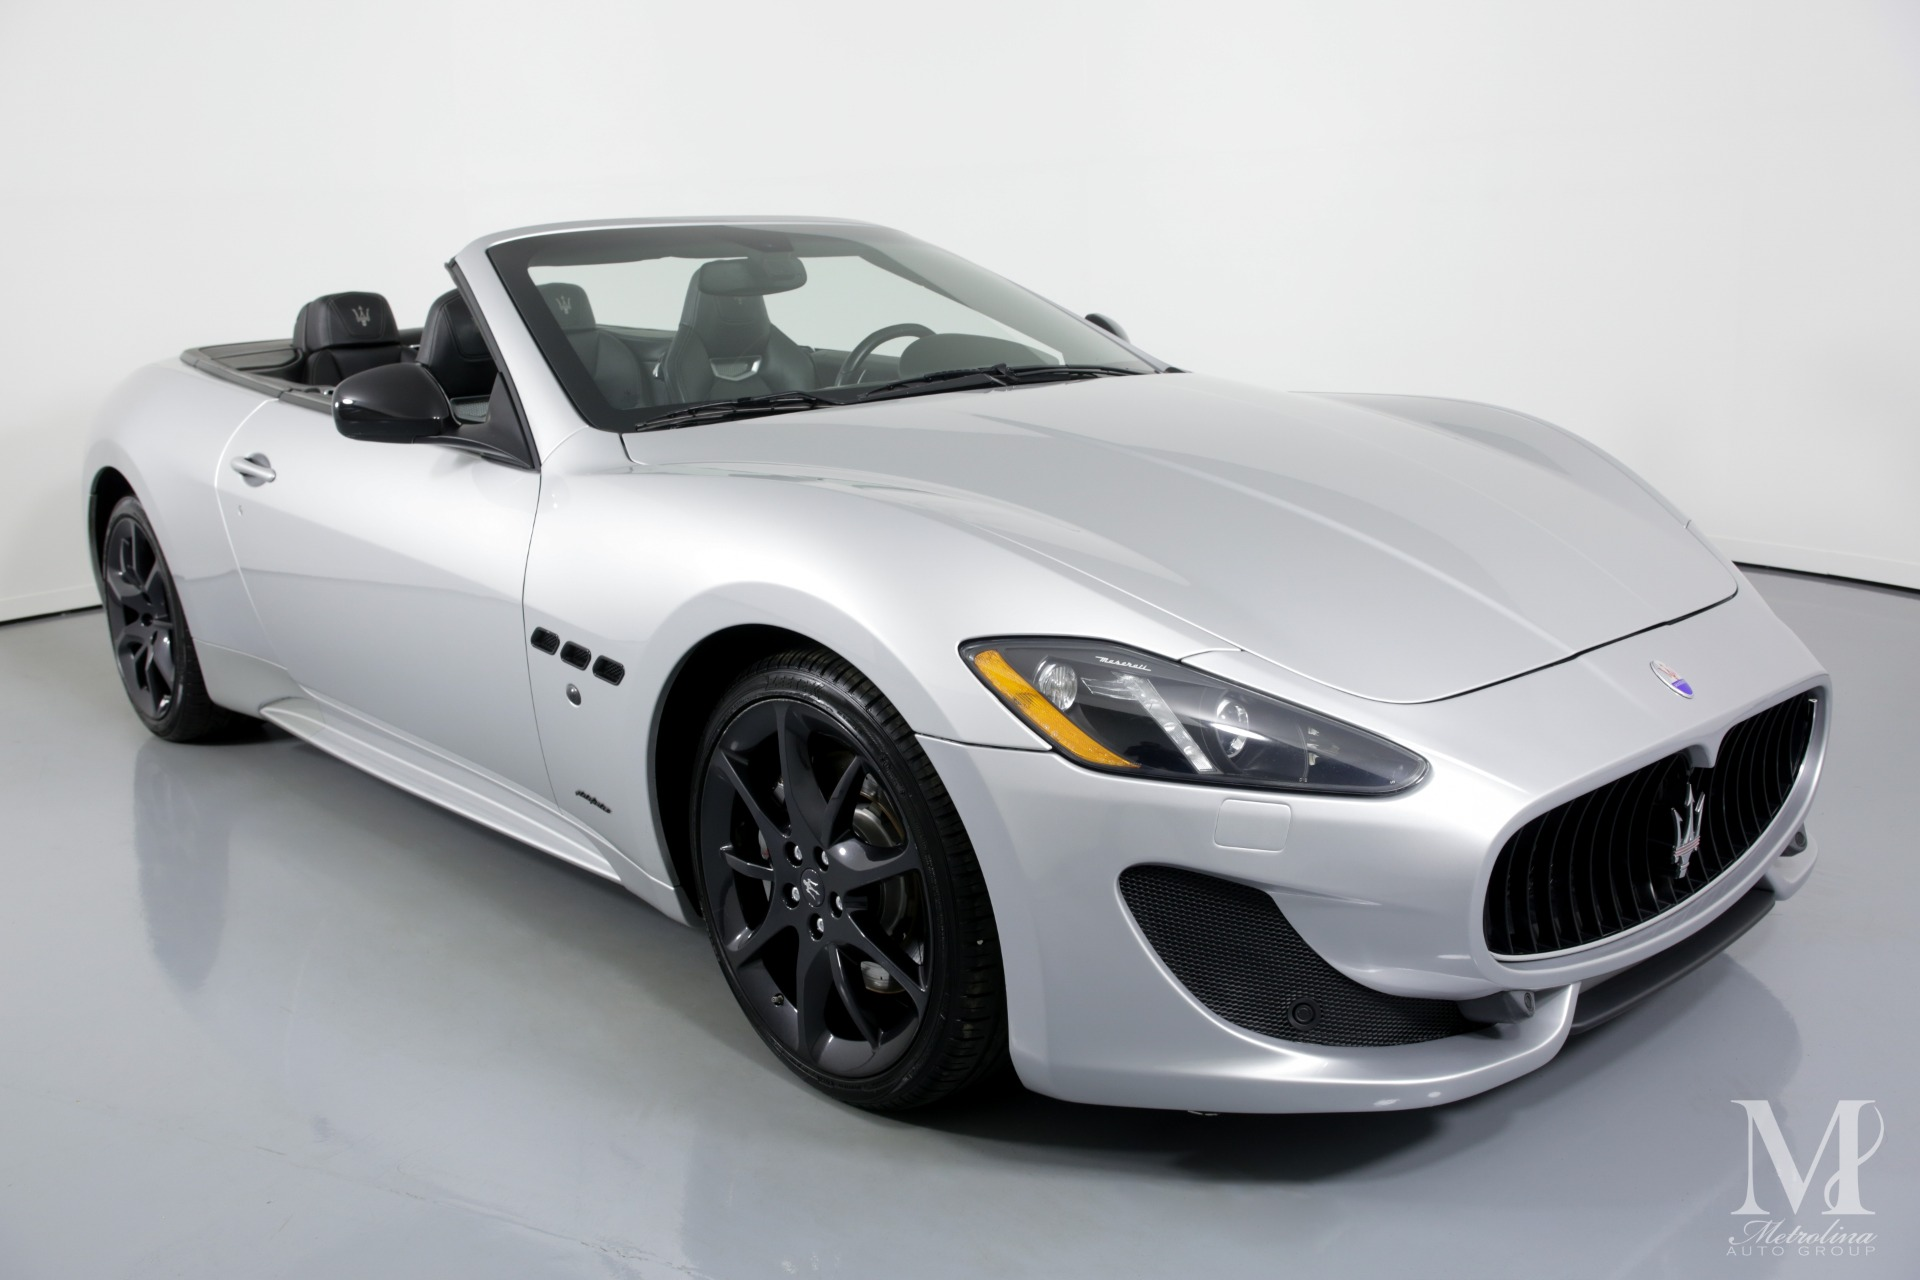 Used 2014 Maserati GranTurismo Sport 2dr Convertible for sale $54,996 at Metrolina Auto Group in Charlotte NC 28217 - 3